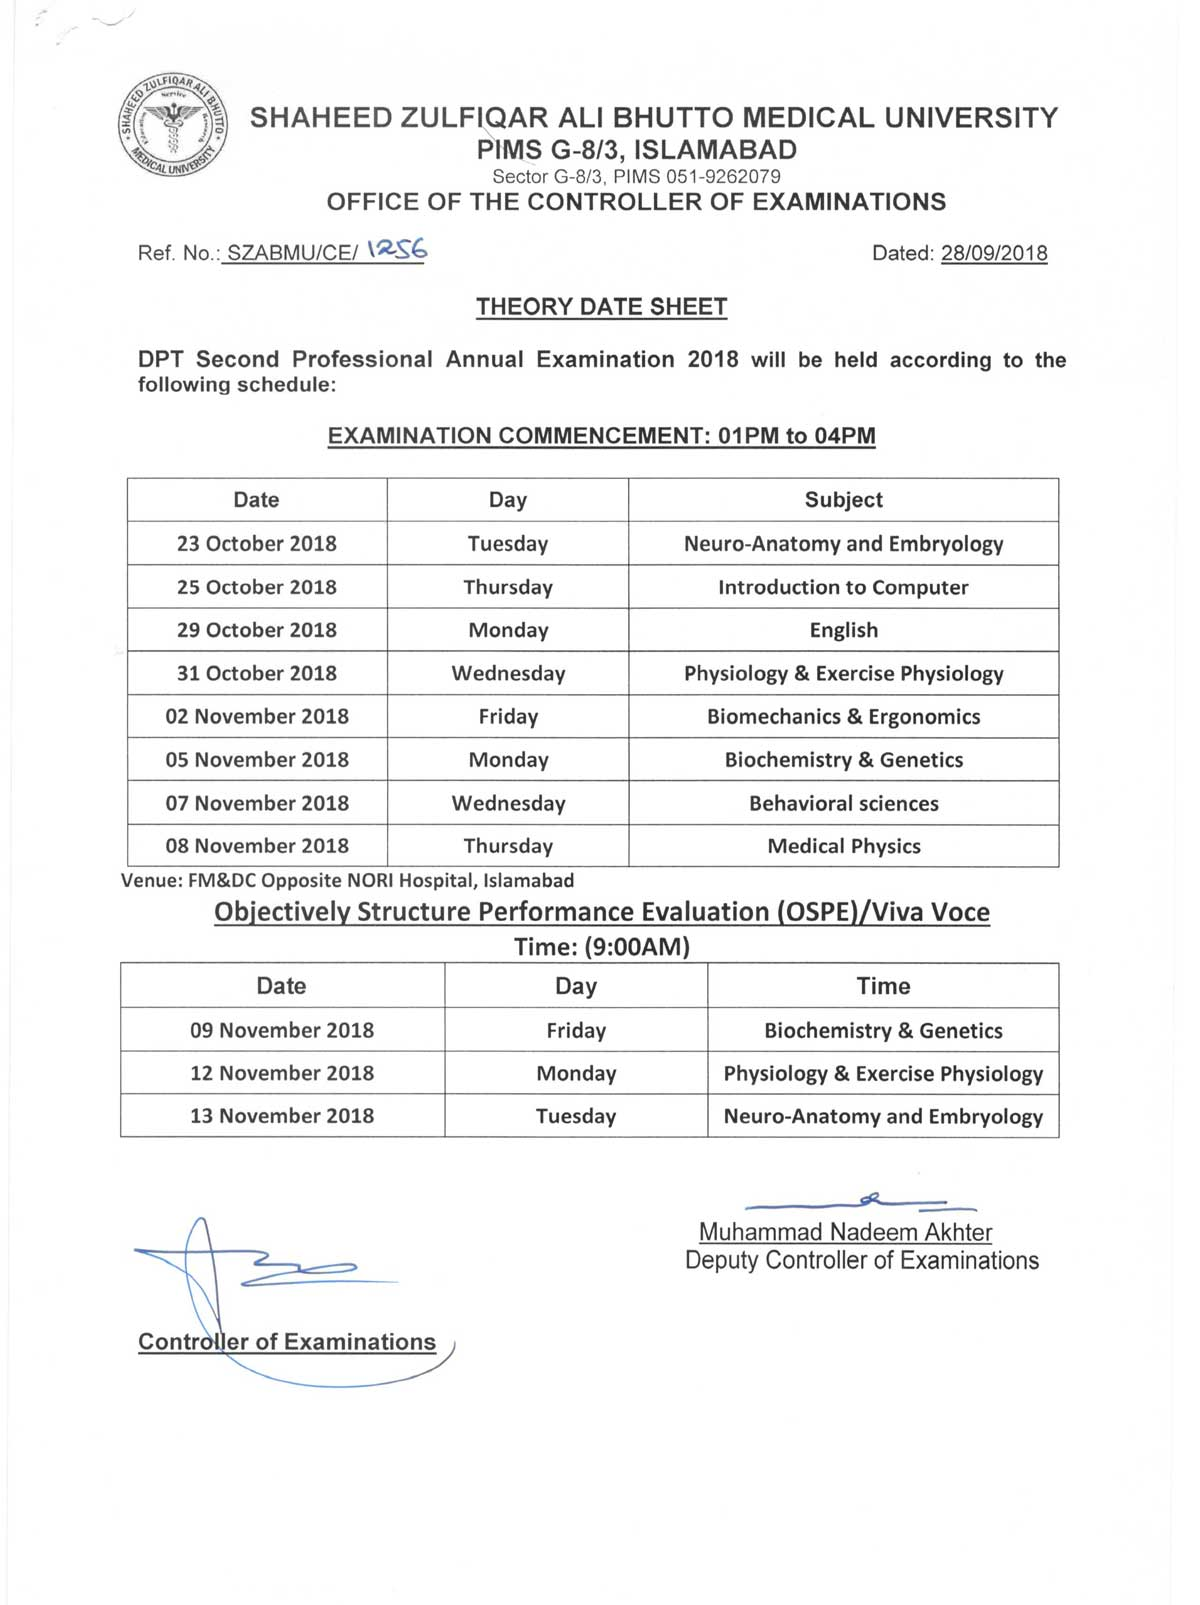 Date Sheets - DPT 1st, 2nd, 3rd & 4th Professional Annual Examinations